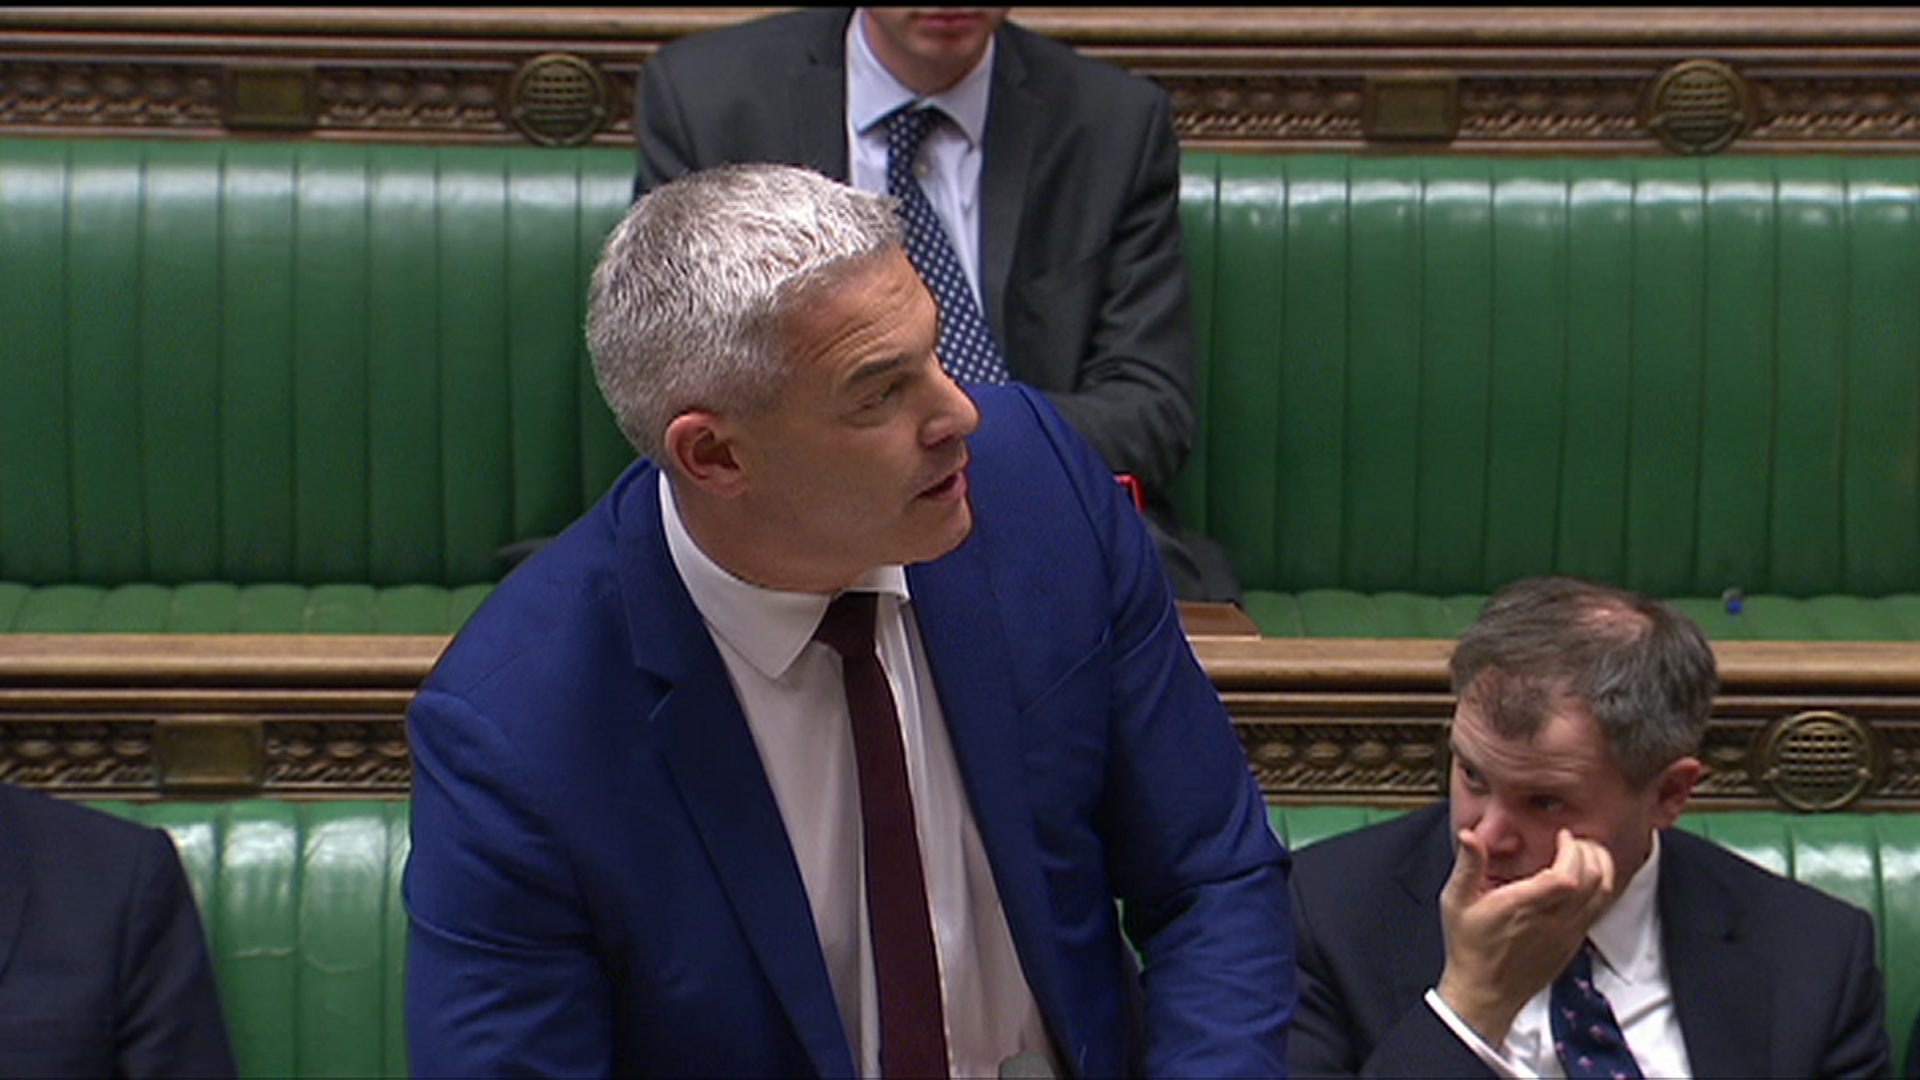 Bercow: Deal vote today 'would be repetitive and disorderly'